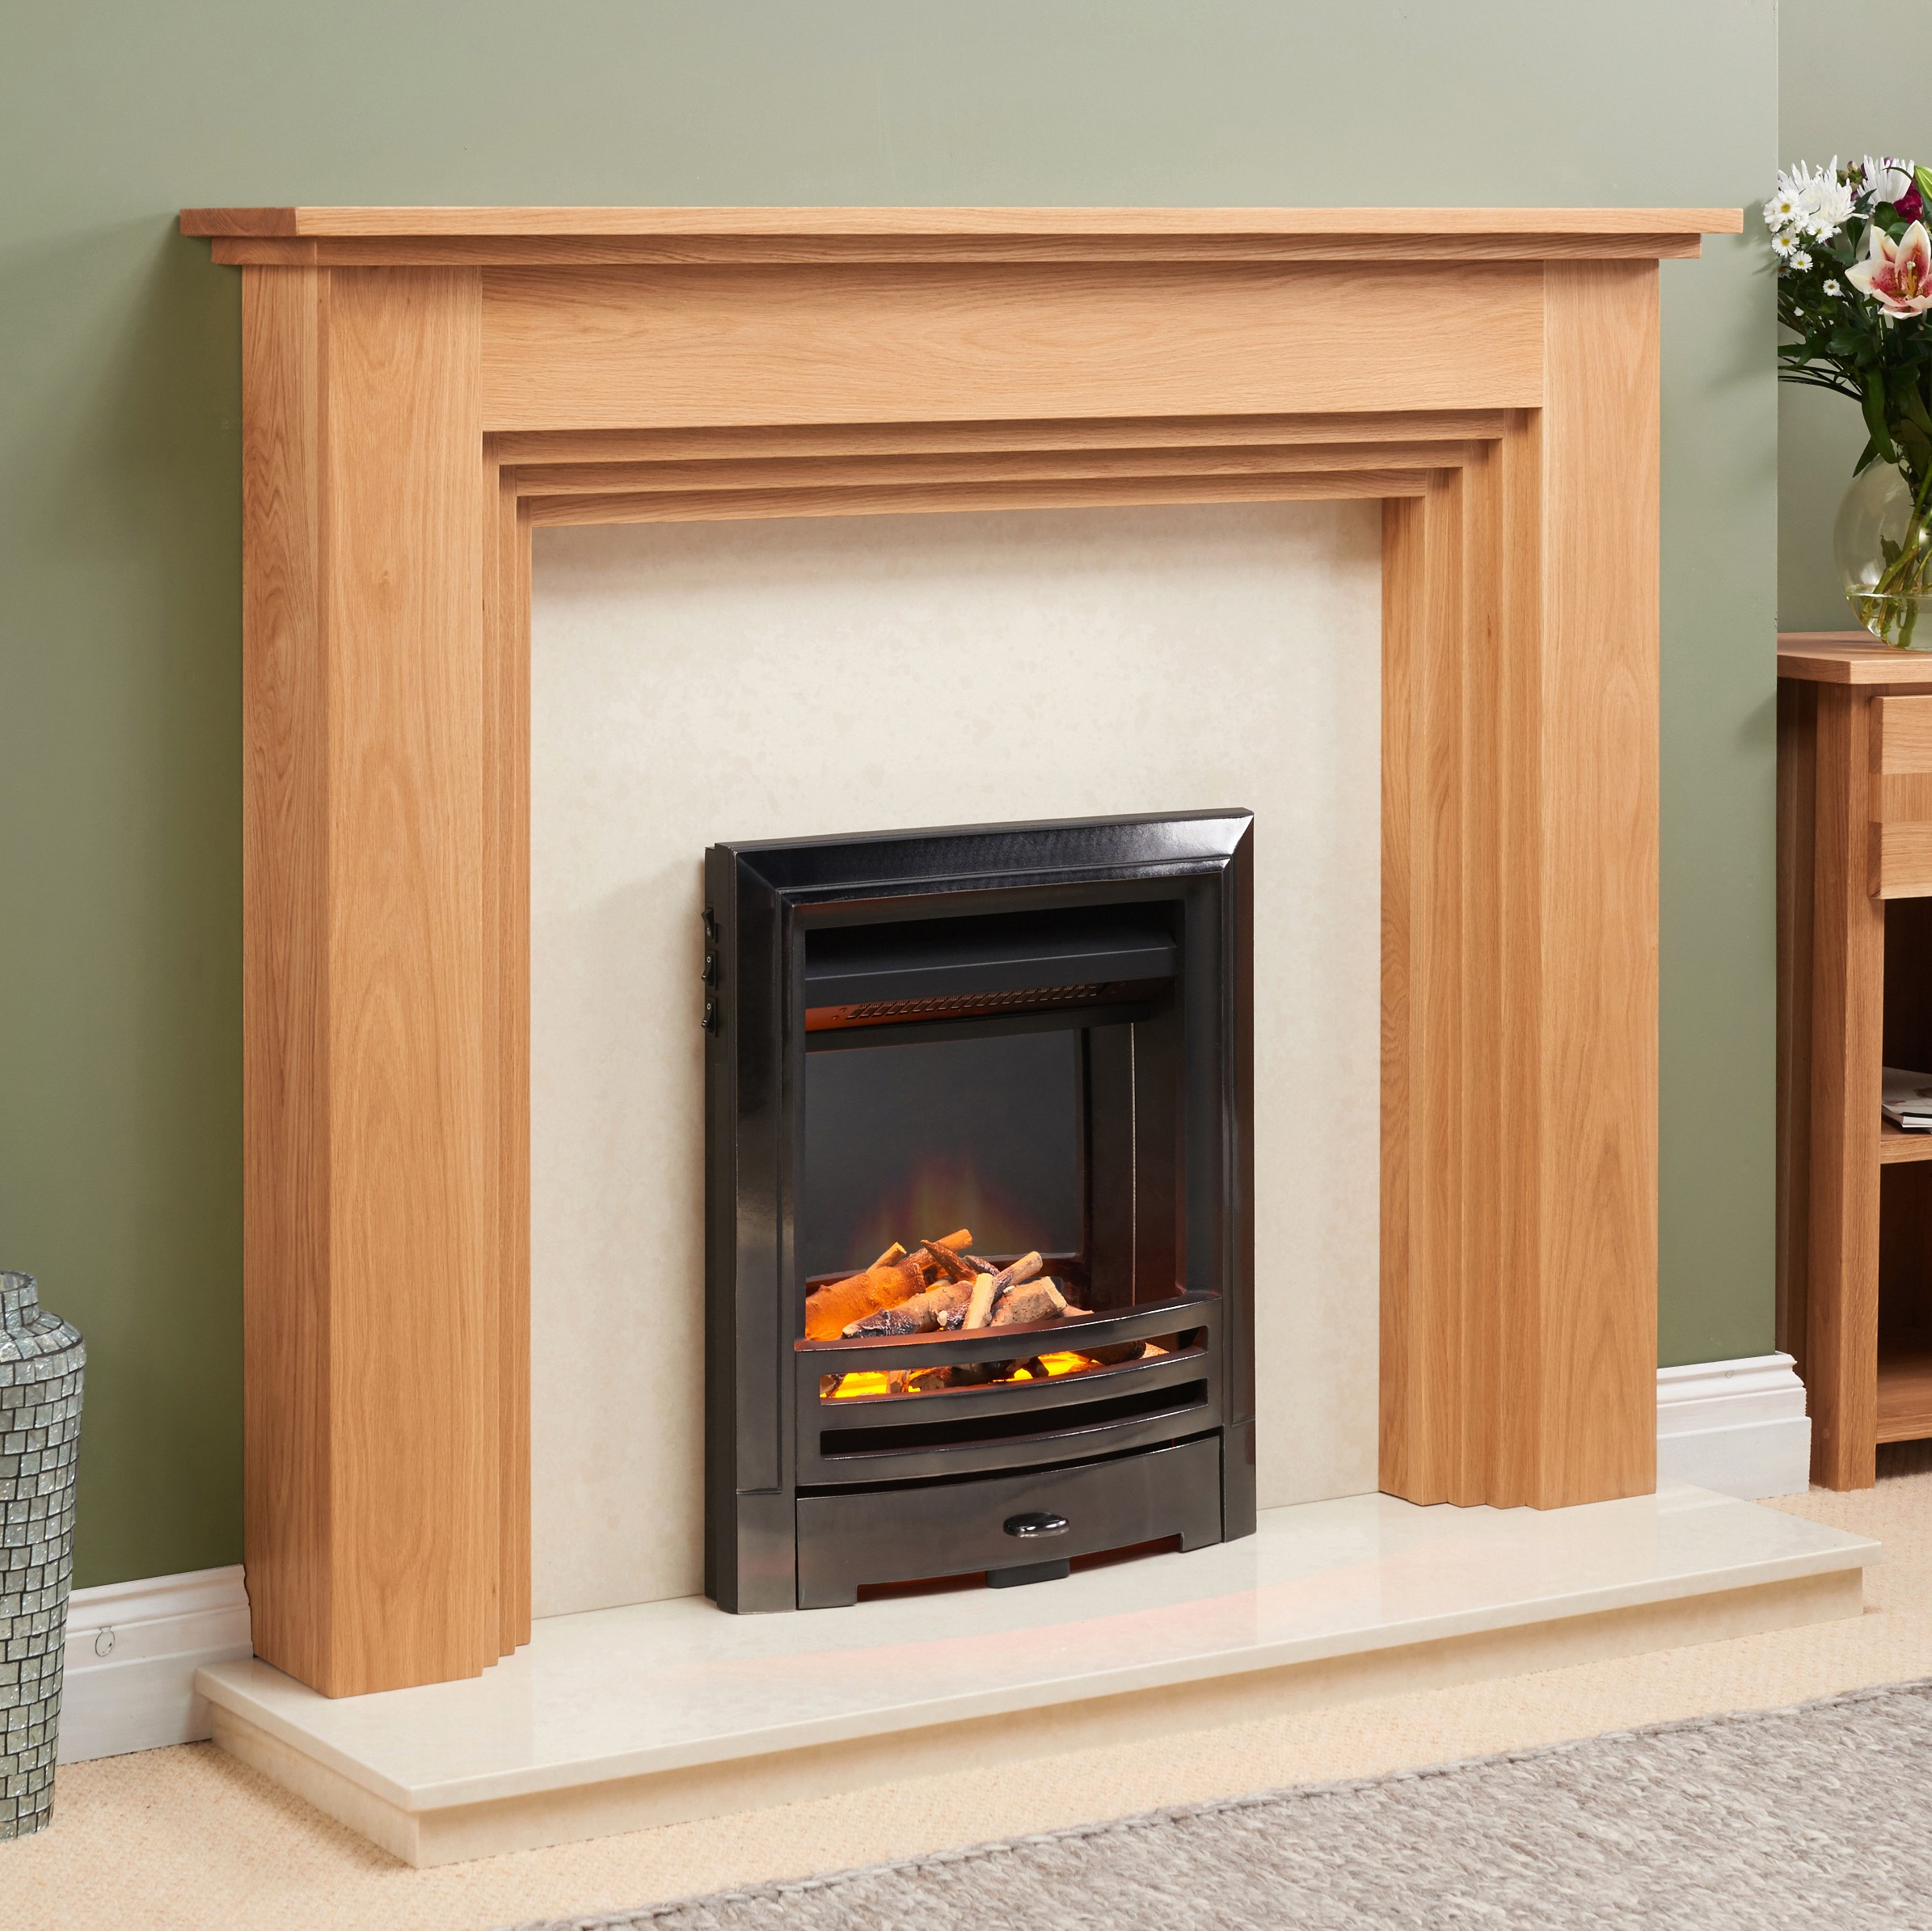 Fairways Roma Solid Oak Fire Surround